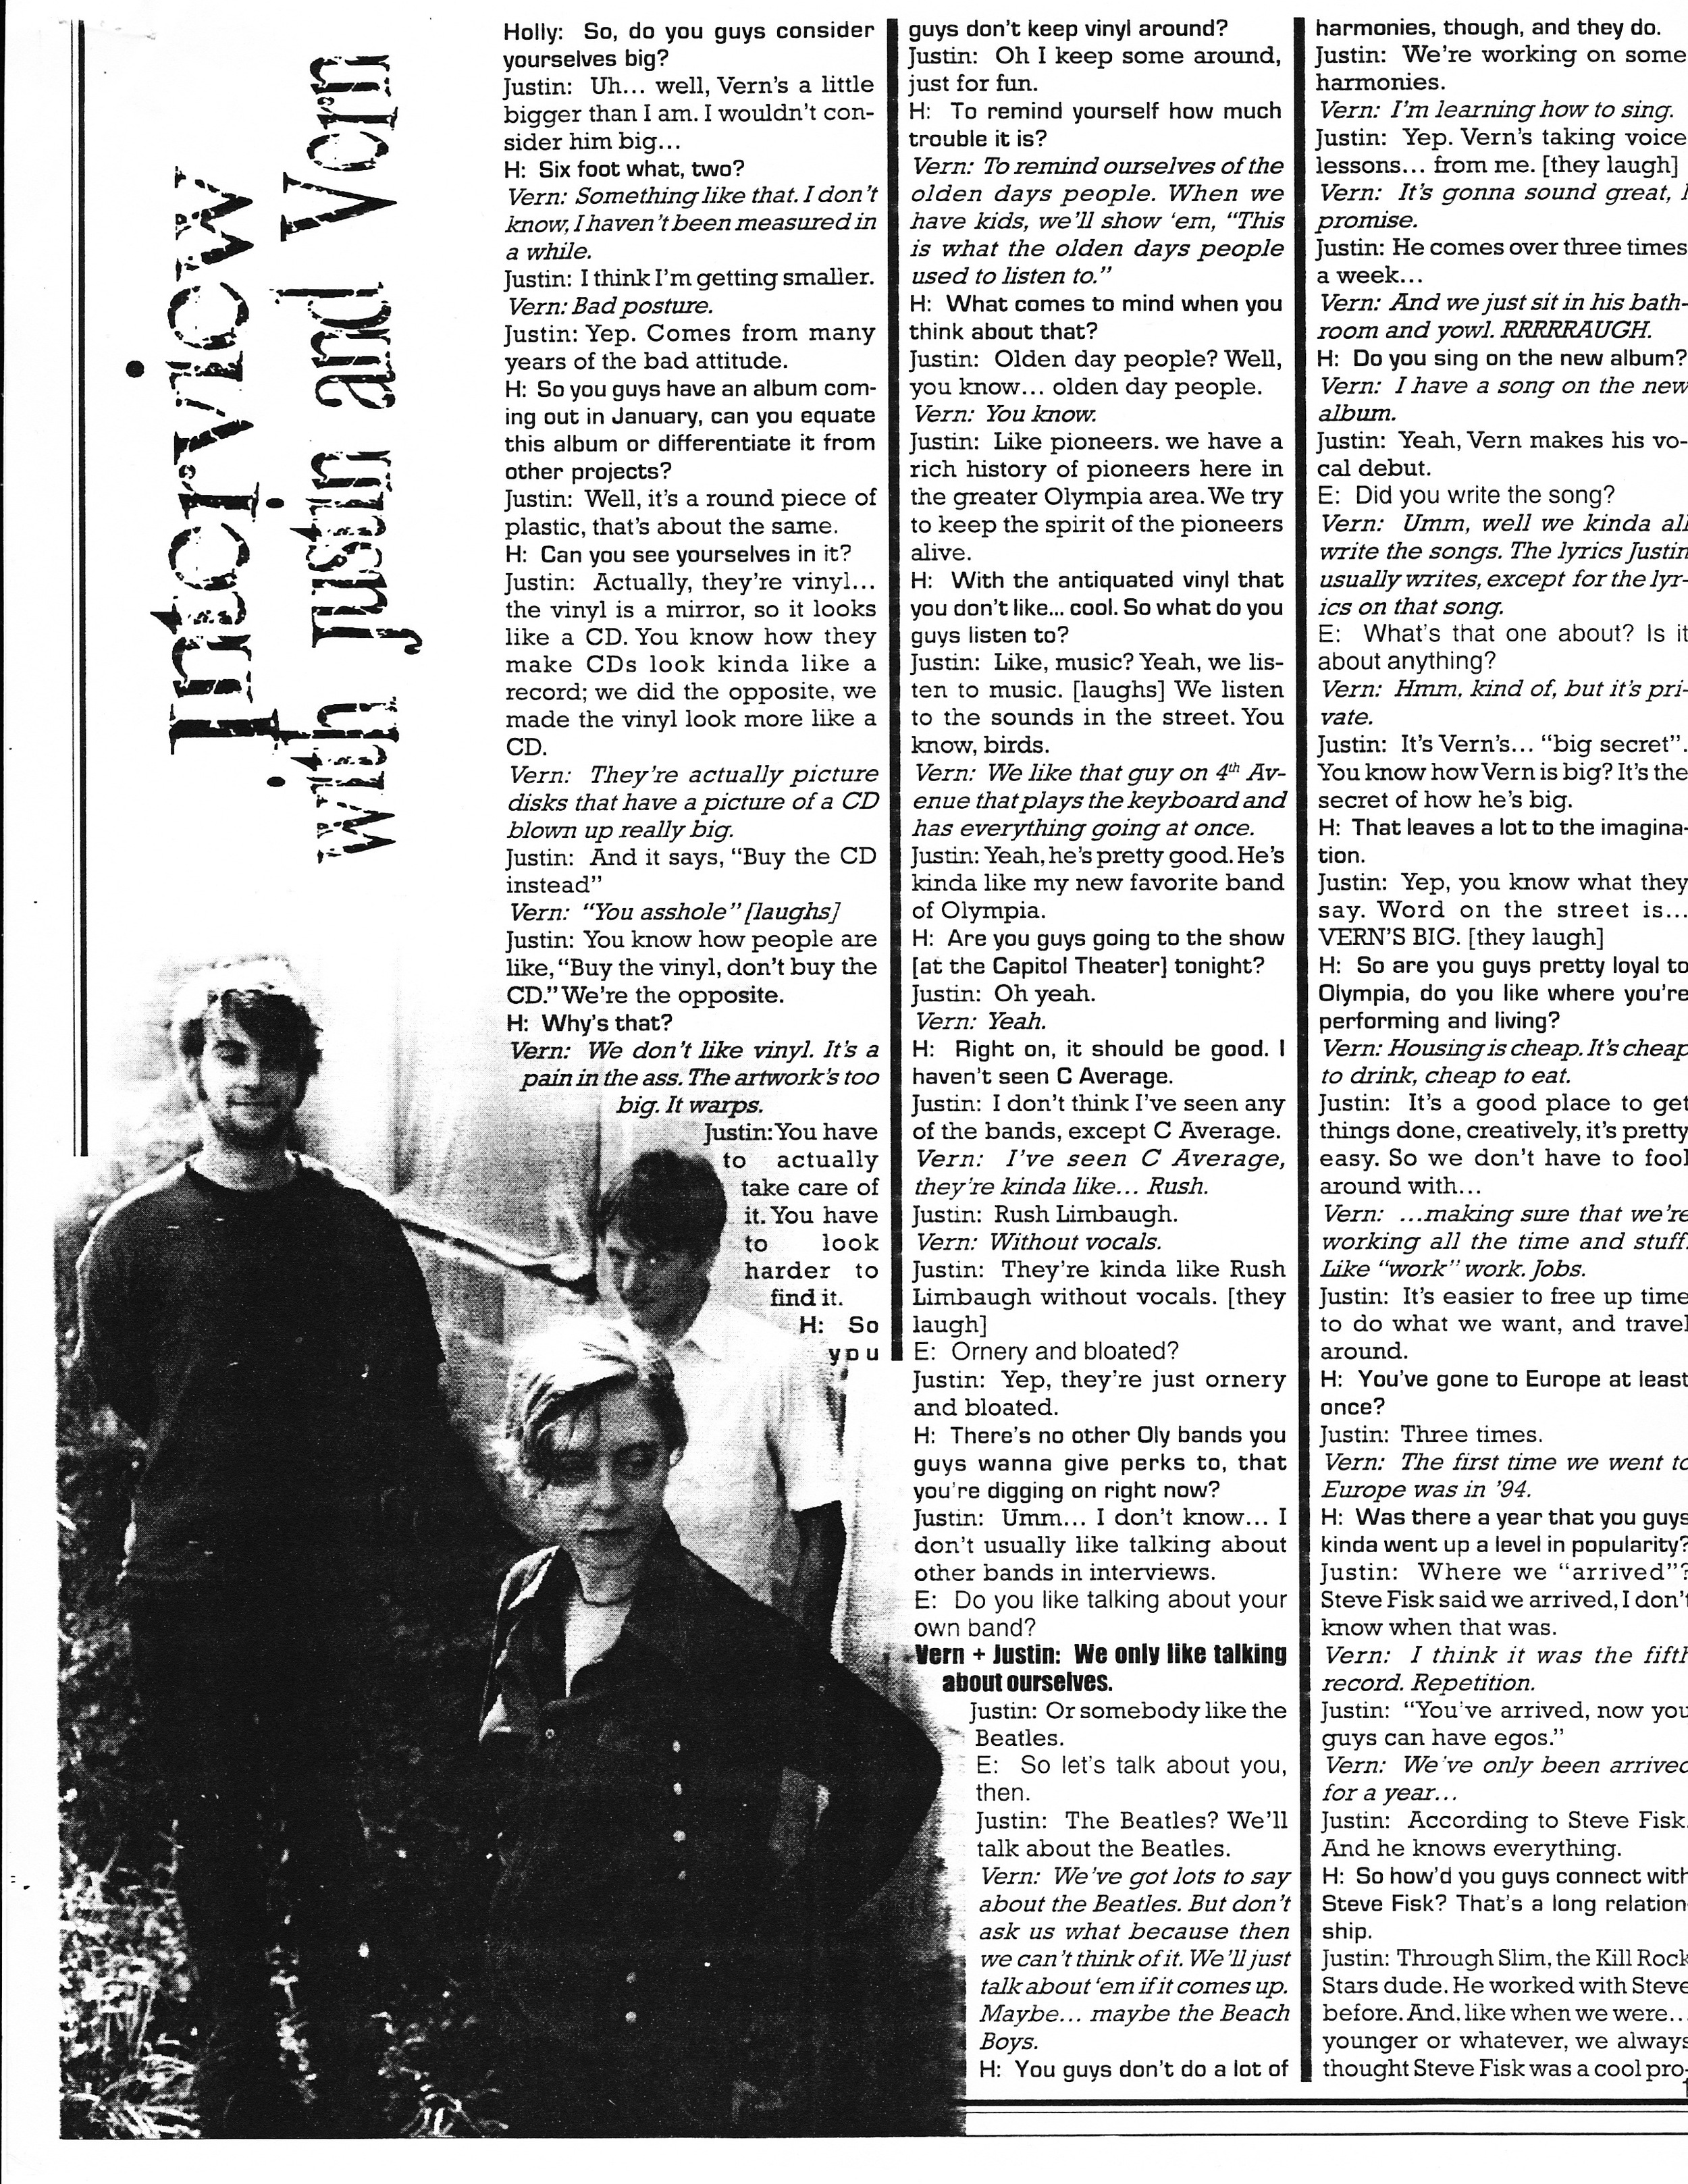 Axis Music & Media Dispatch Jan 1998 Interview with Justin and Vern. p.2